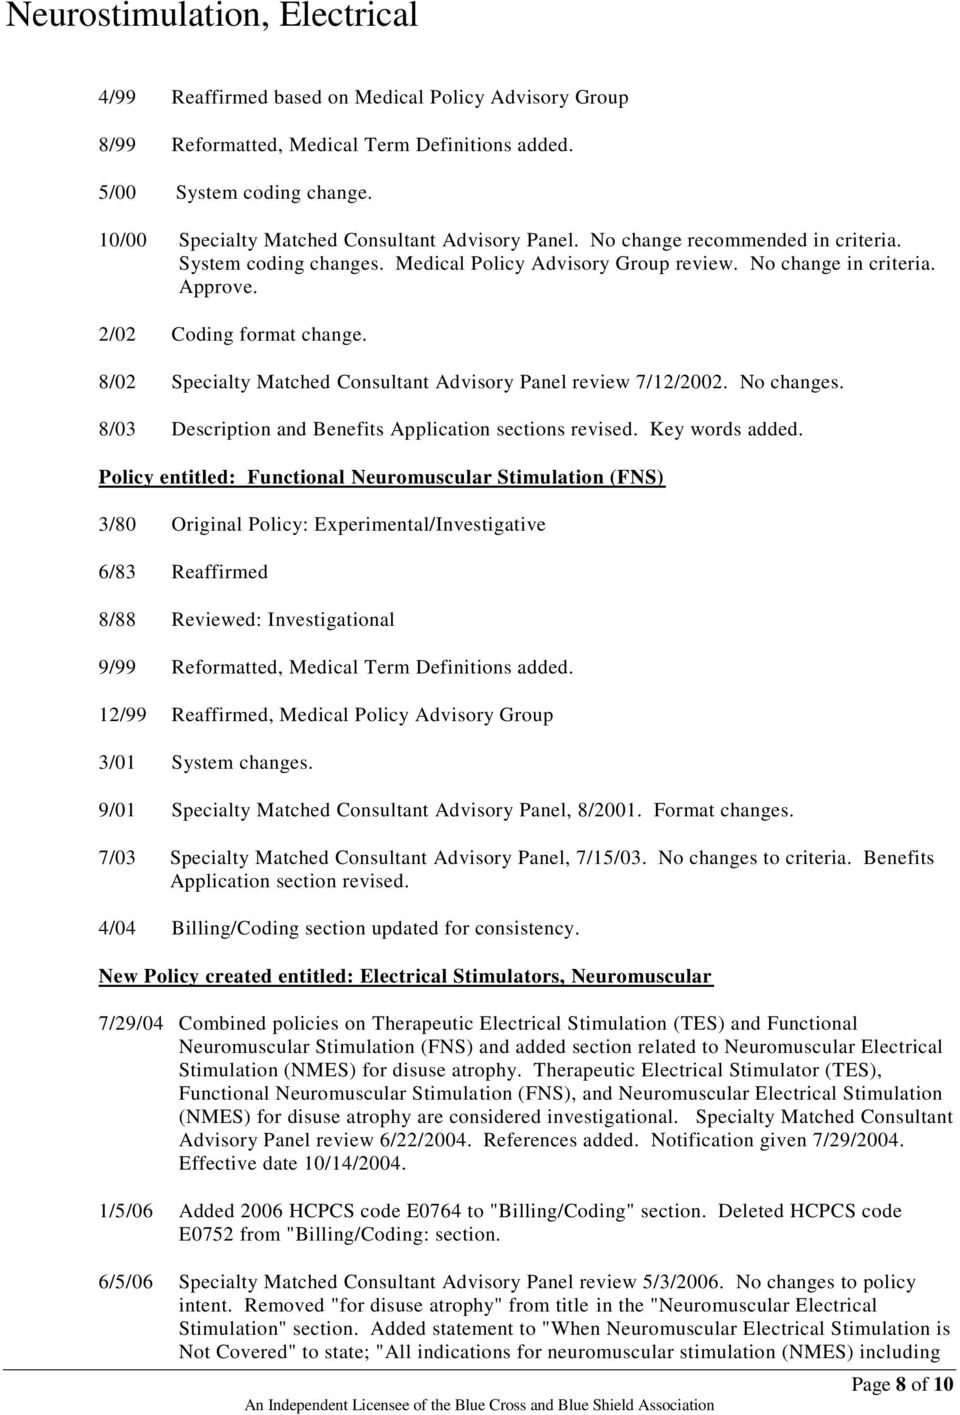 8/02 Specialty Matched Consultant Advisory Panel review 7/12/2002. No changes. 8/03 Description and Benefits Application sections revised. Key words added.